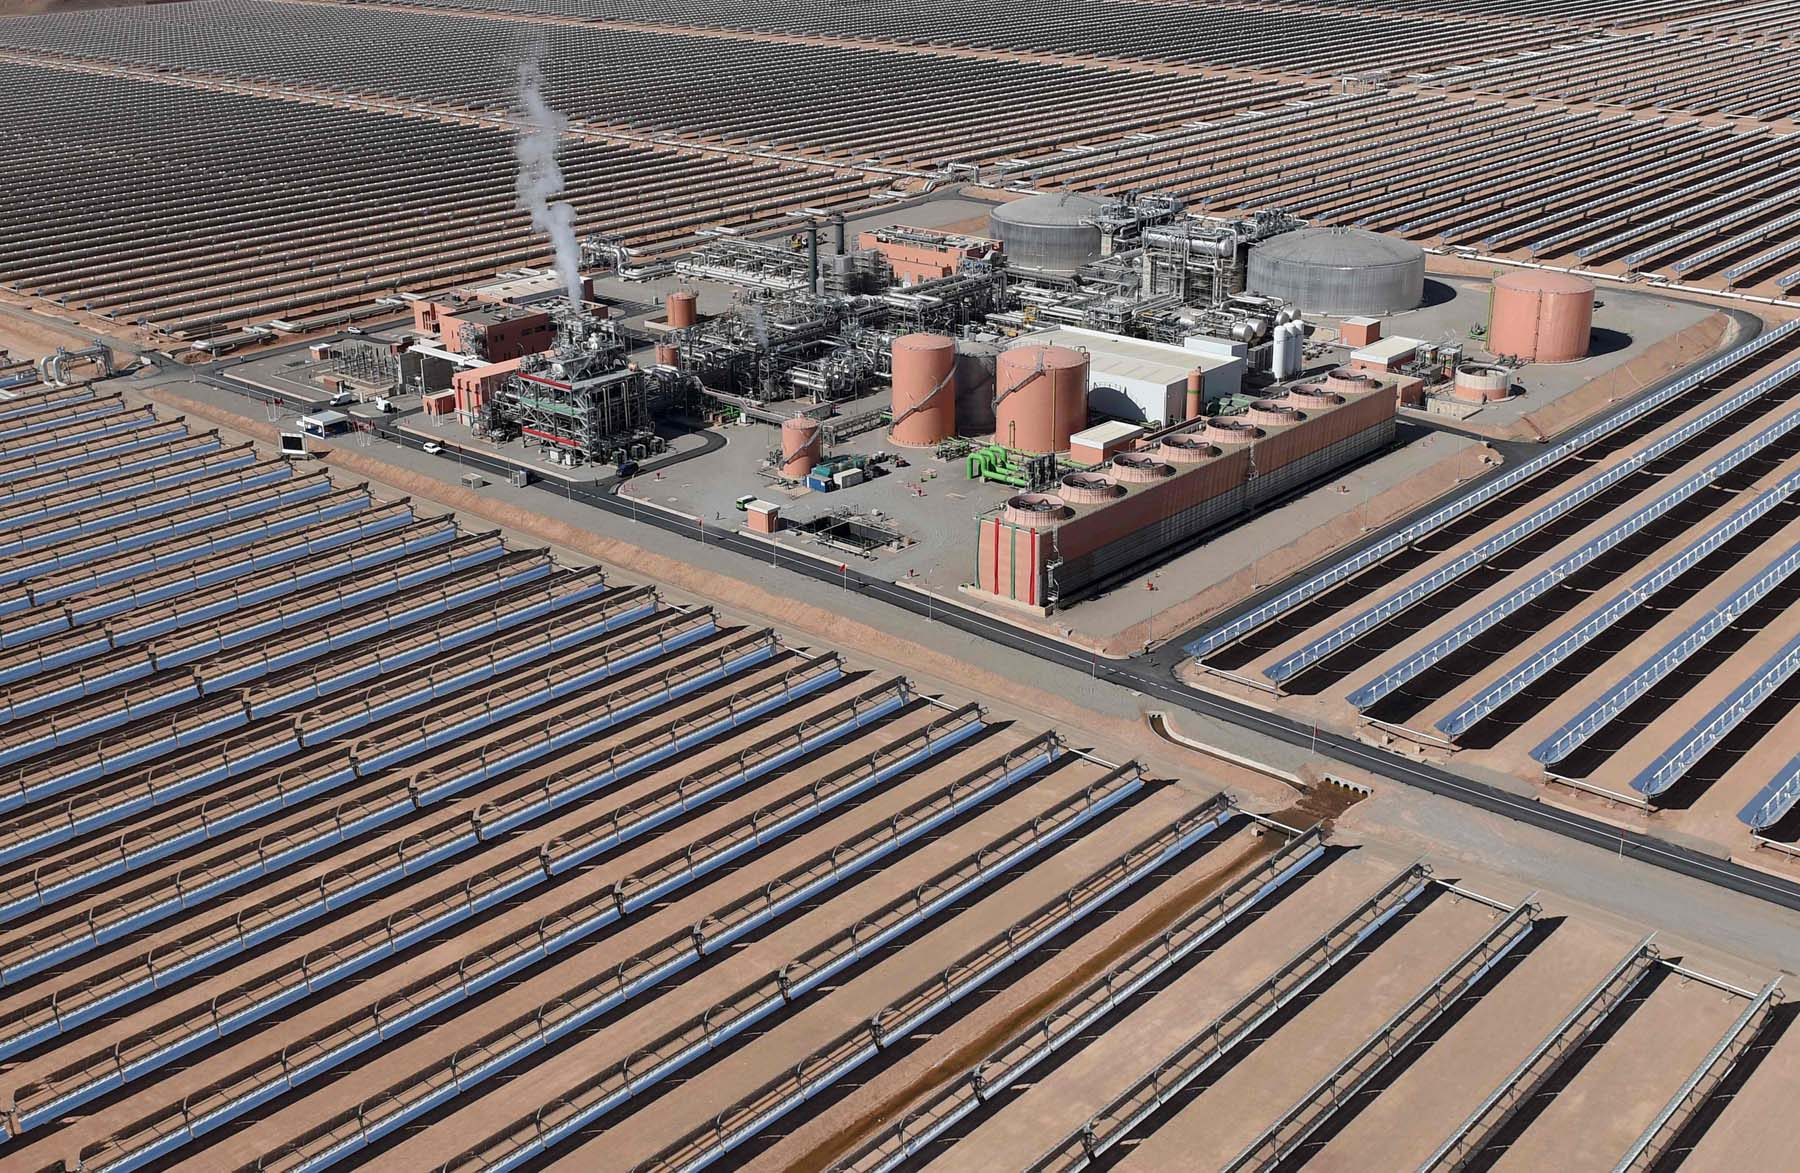 An aerial view of the solar mirrors at the Noor 1 Concentrated Solar Power (CSP) plant, some 20km (12.5 miles) outside the central Moroccan town of Ouarzazate. (AFP)